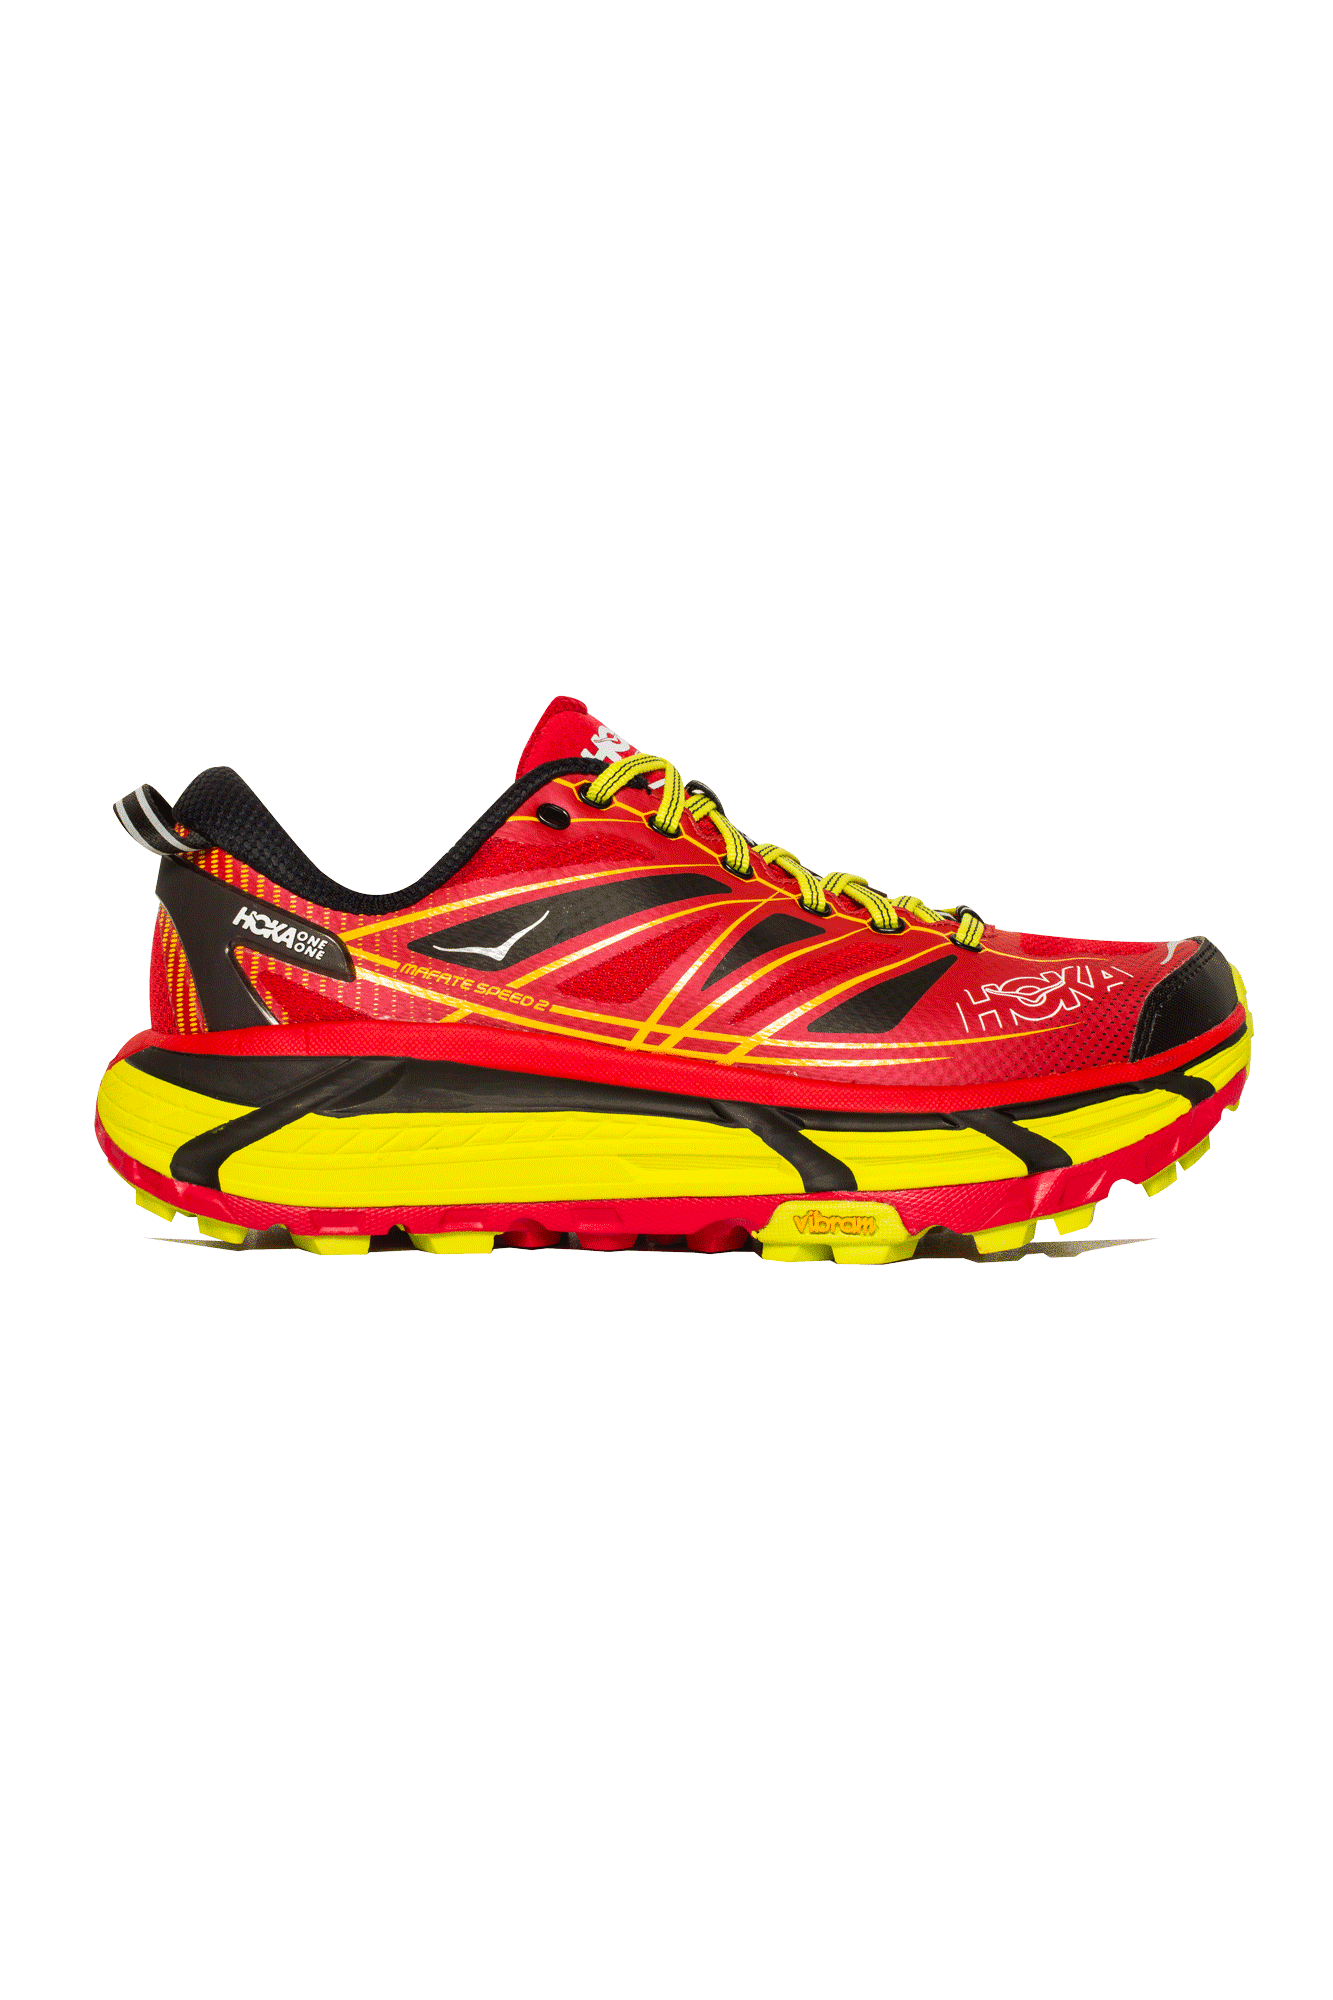 Hoka One One Trainers Mafate Speed 2 Men's Rosso 1012343T#000#RCT#8 - One Block Down